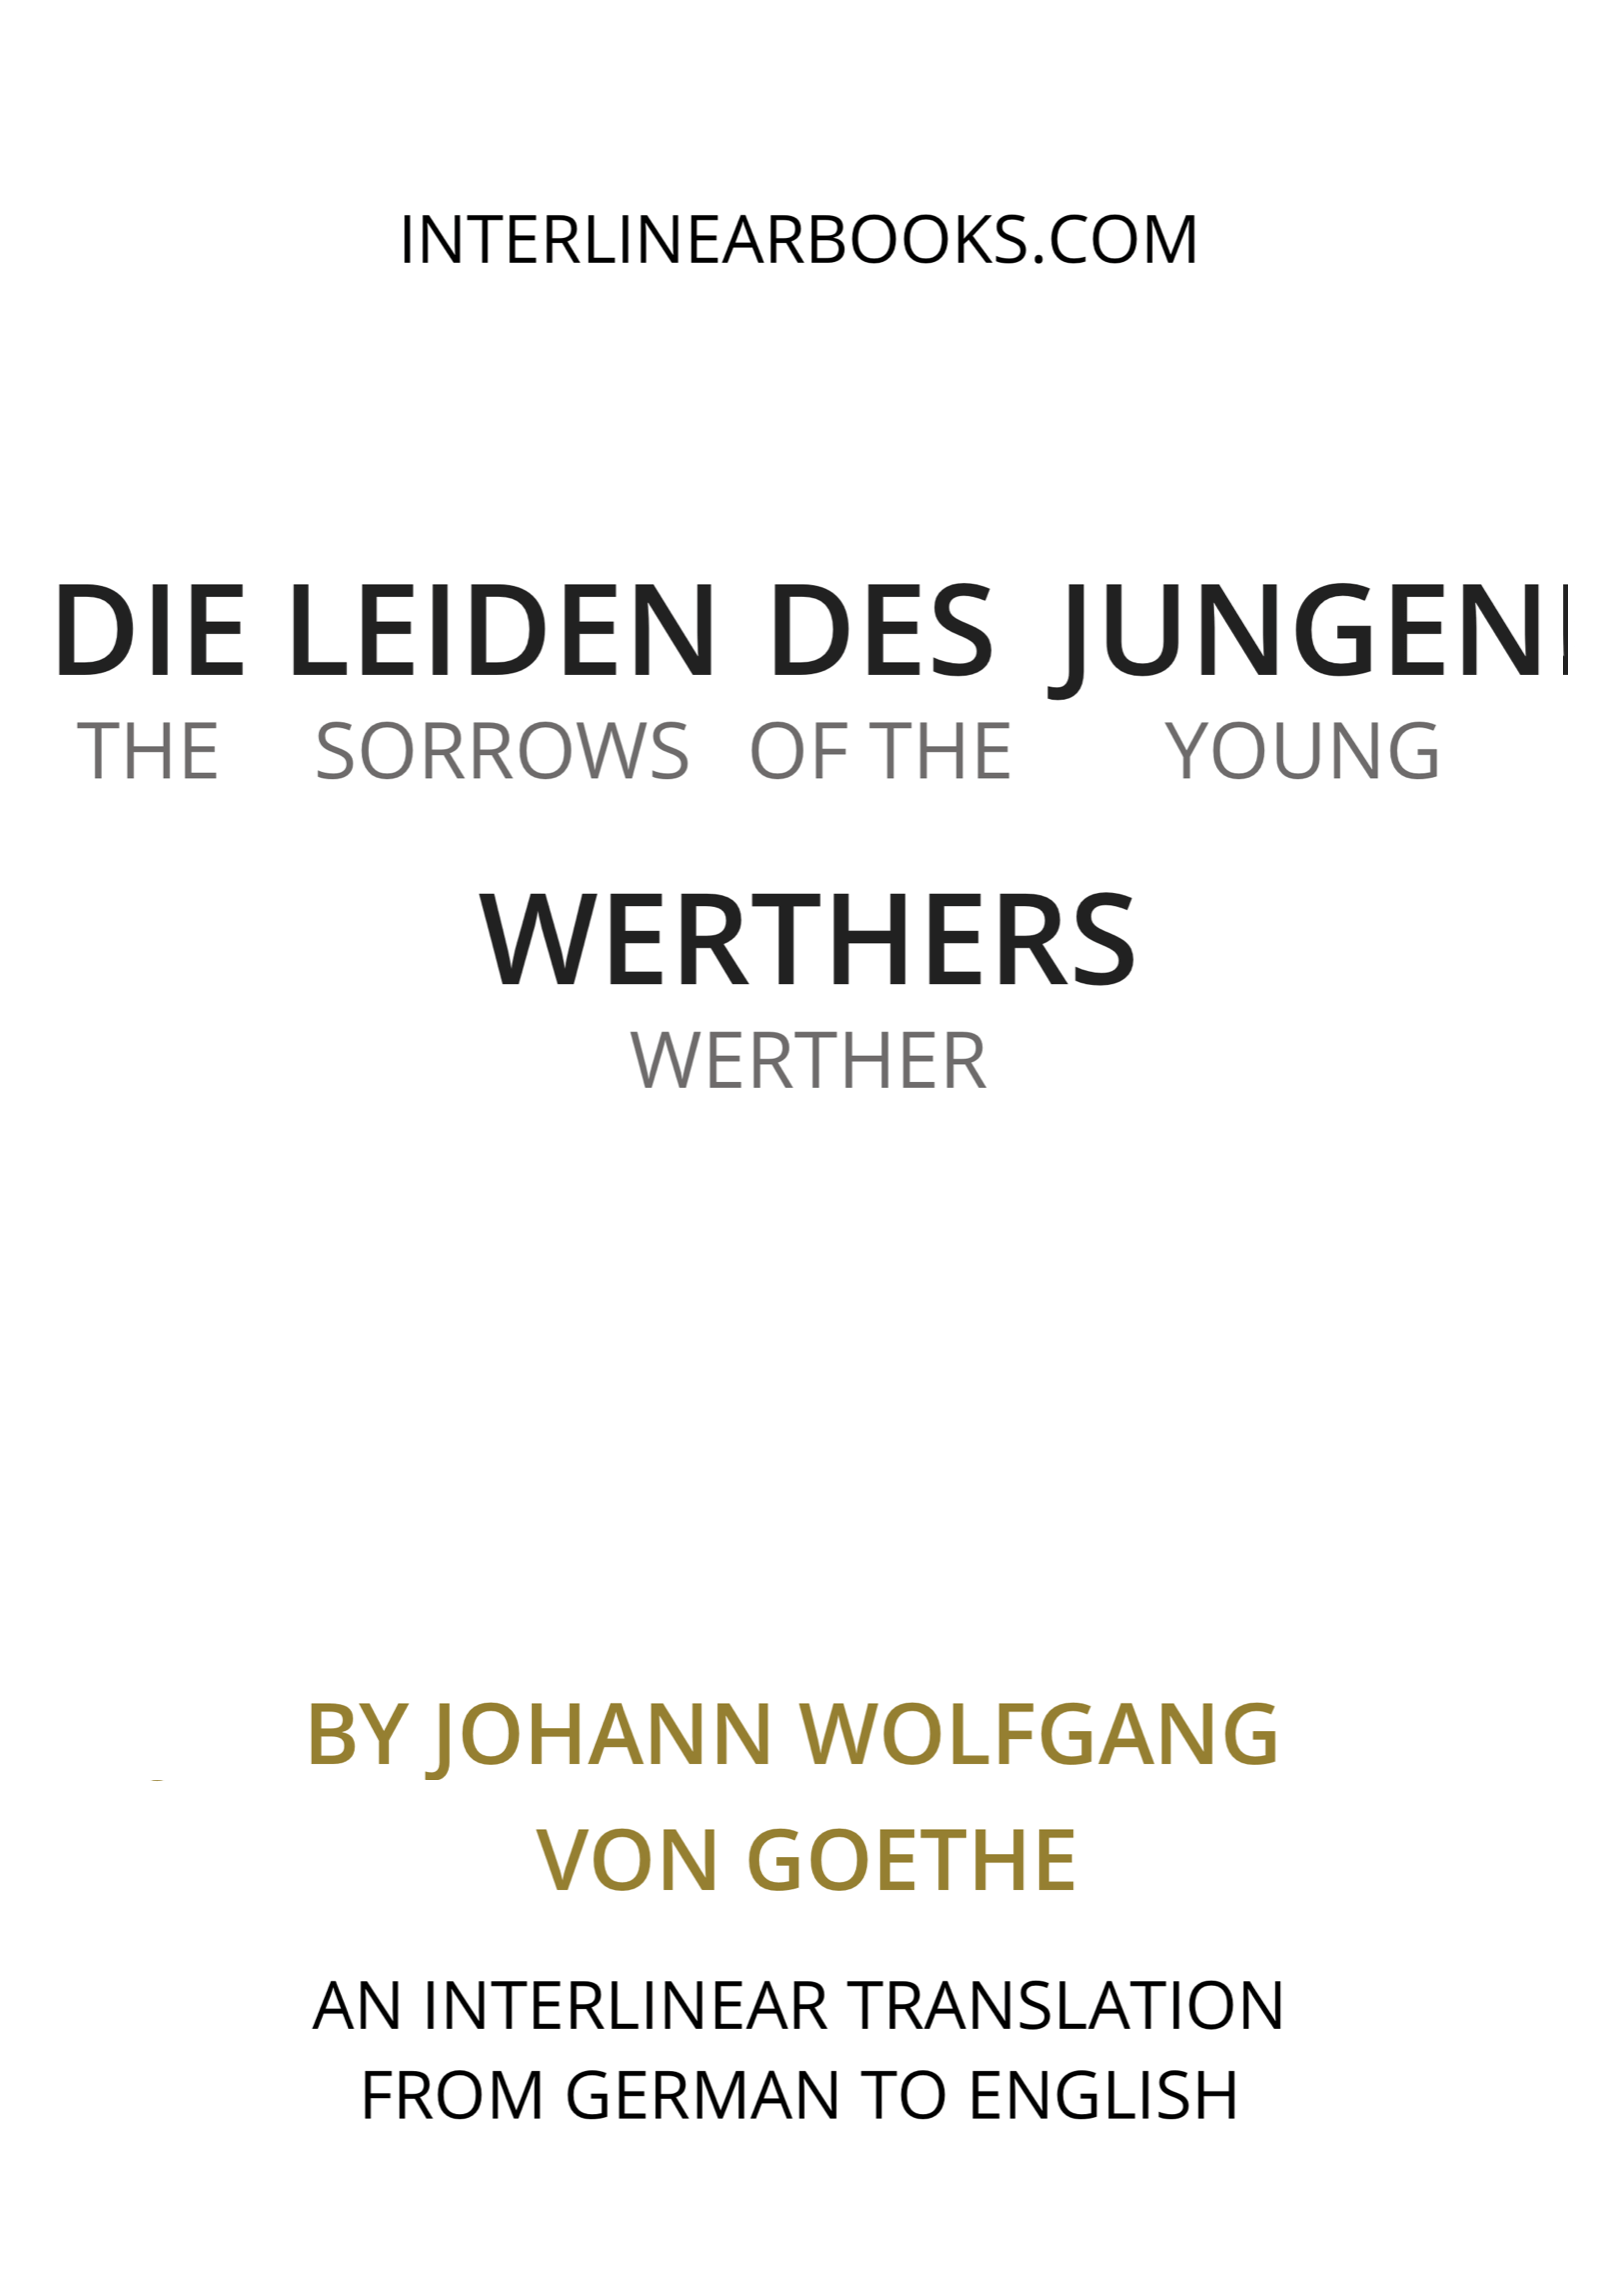 German book: Die Leiden des jungen Werthers / The Sorrows of Young Werther